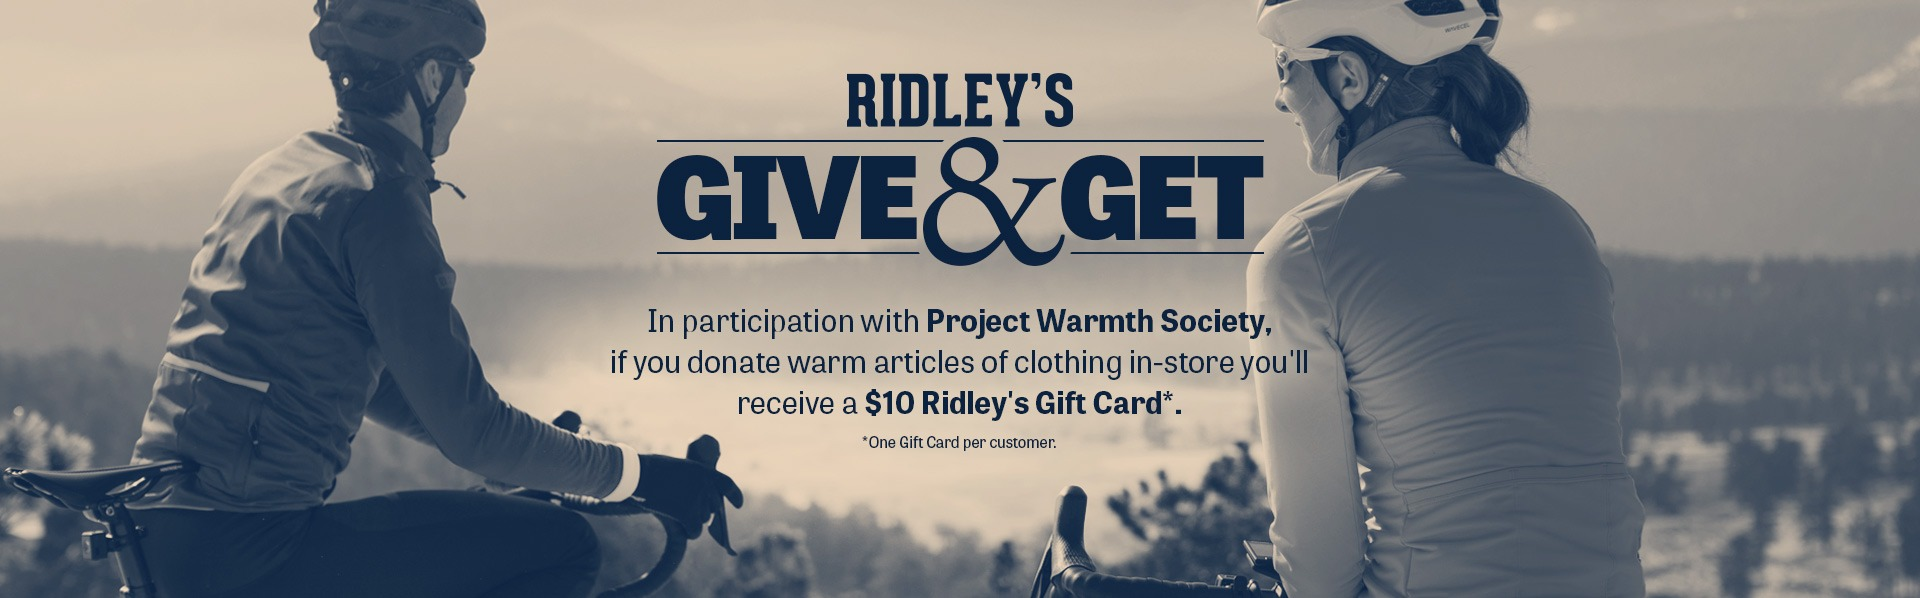 Ridley's Give and Get